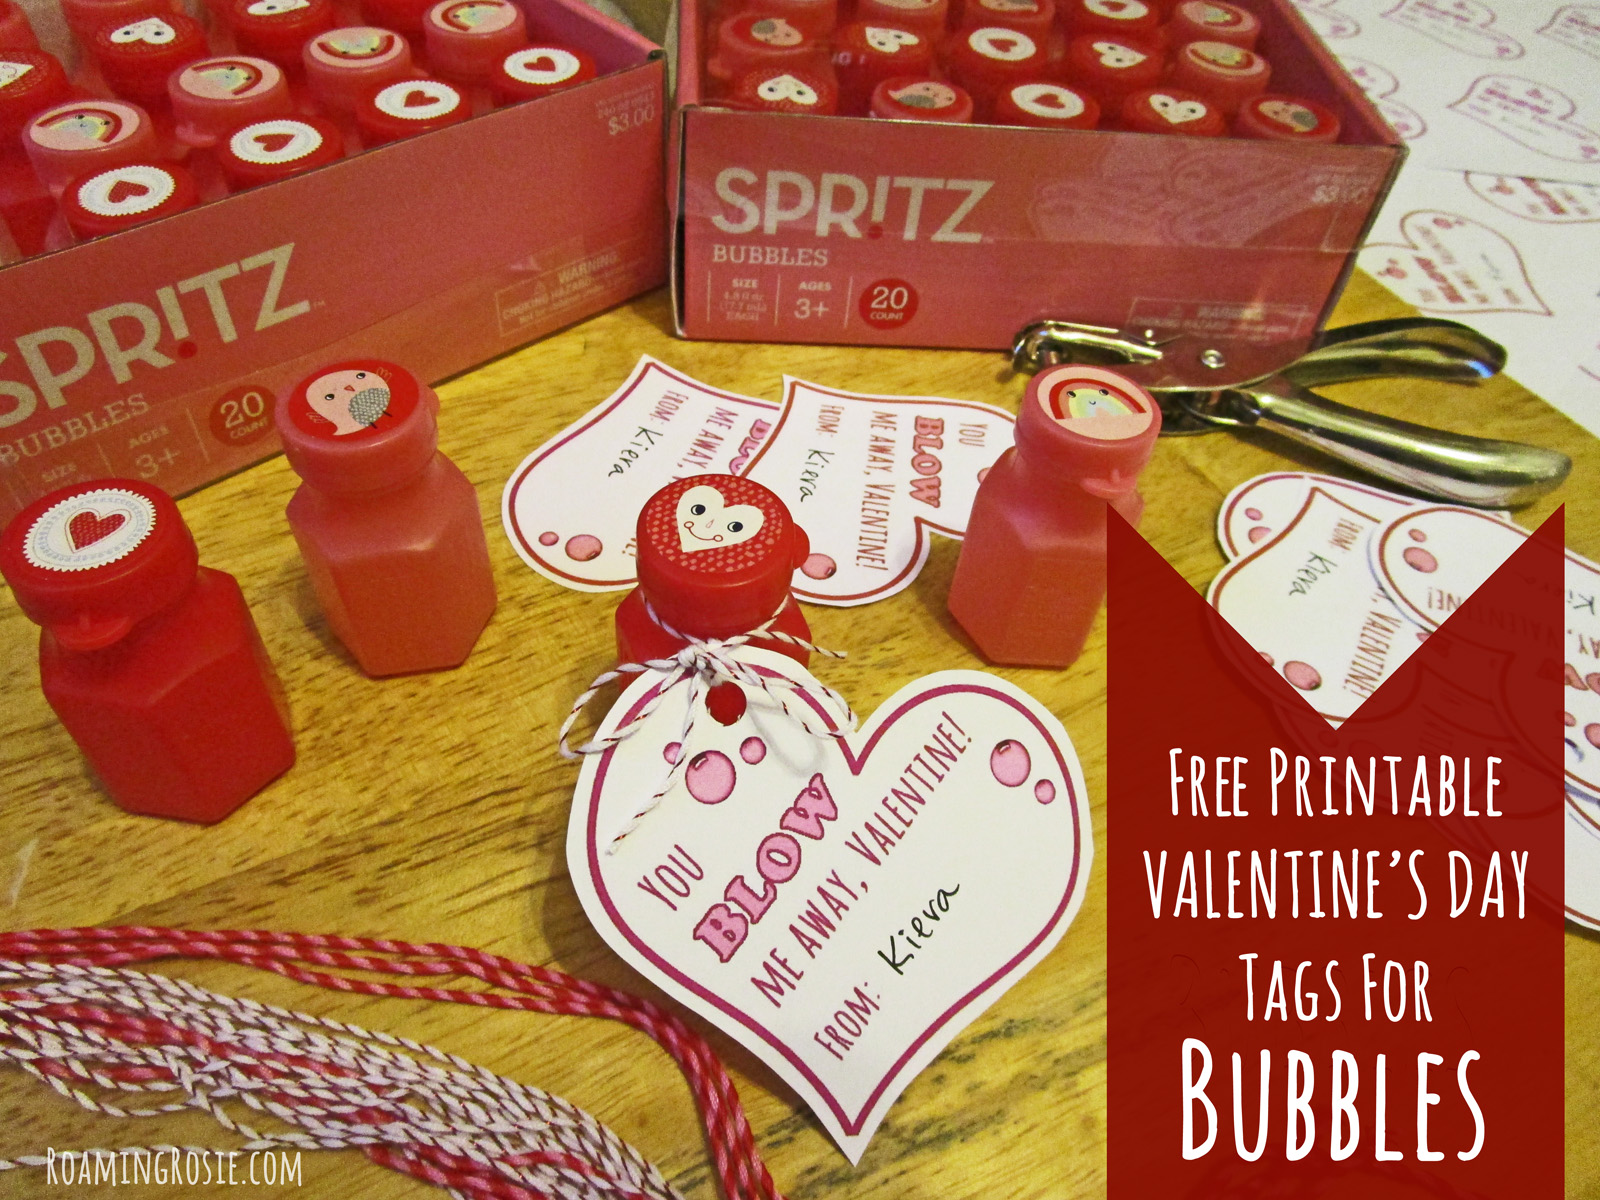 image regarding Bubble Valentine Printable identified as Valentines Working day Printable Tags for Bubbles Roaming Rosie